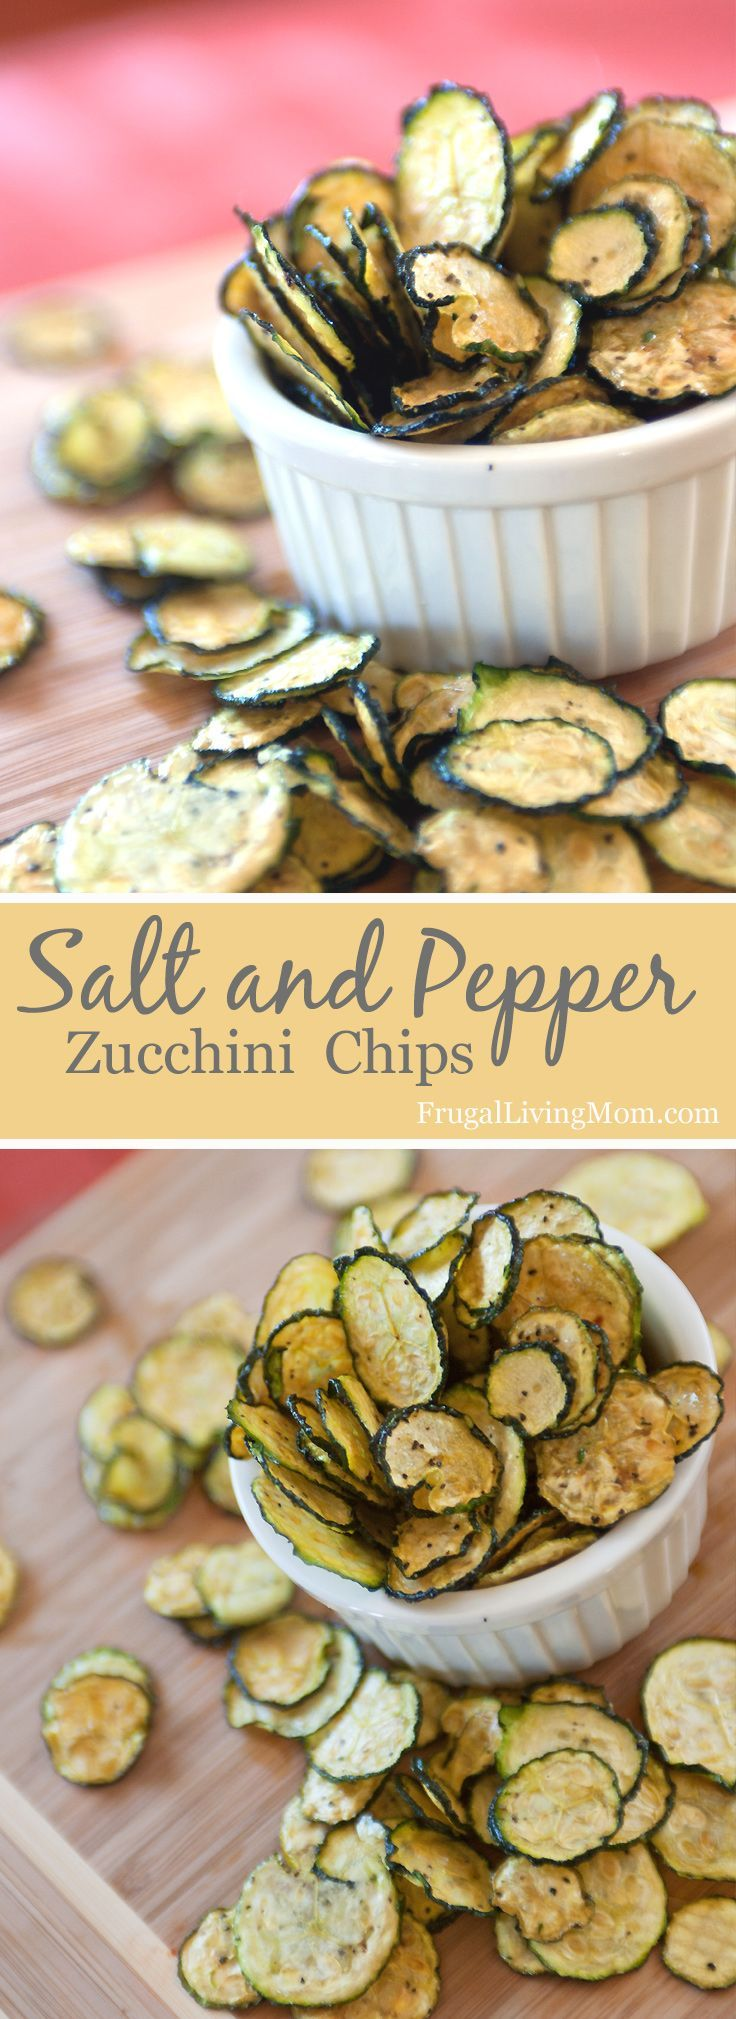 Salt and Pepper Zucchini Chips!  Super yummy and #healthy.  You can make these with a dehydrator or in the oven #zucchini (scheduled via http://www.tailwindapp.com?utm_source=pinterest&utm_medium=twpin&utm_content=post296309&utm_campaign=scheduler_attribution)